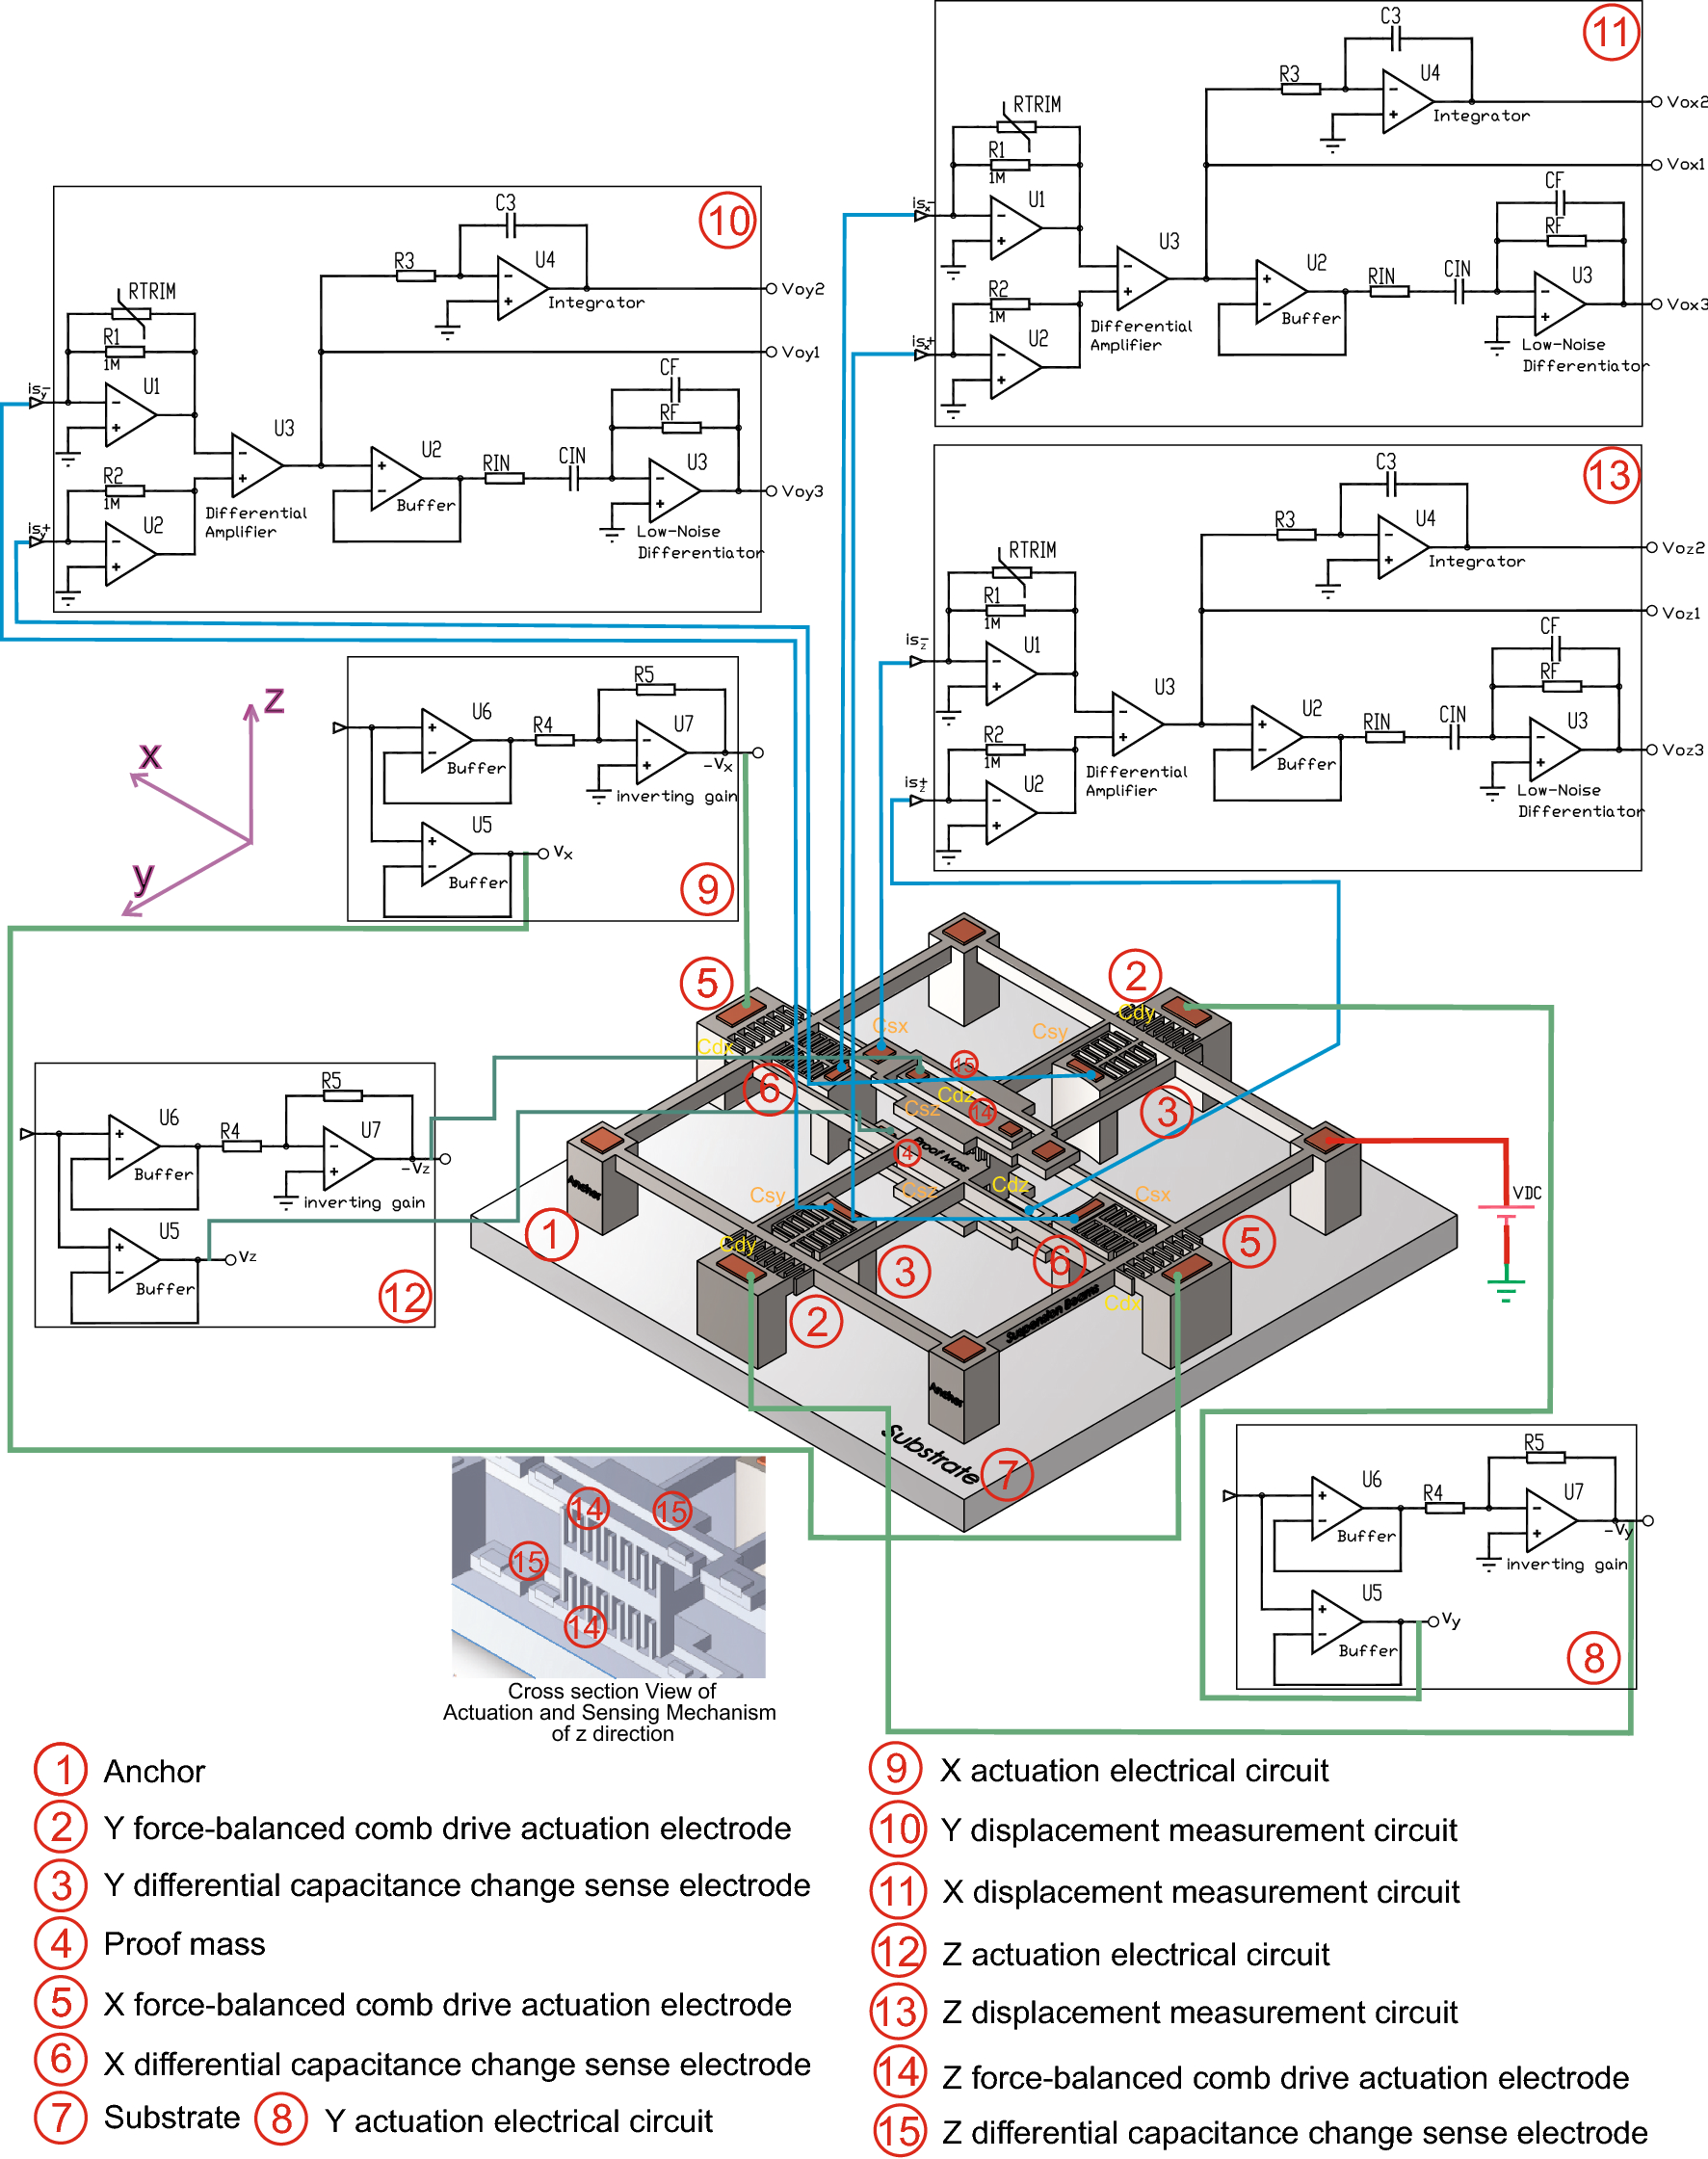 A Composite Adaptive Controller Design For 3 Dof Mems Vibratory Displacementtypeaccelerometercircuitdiagrampng Open Image In New Window